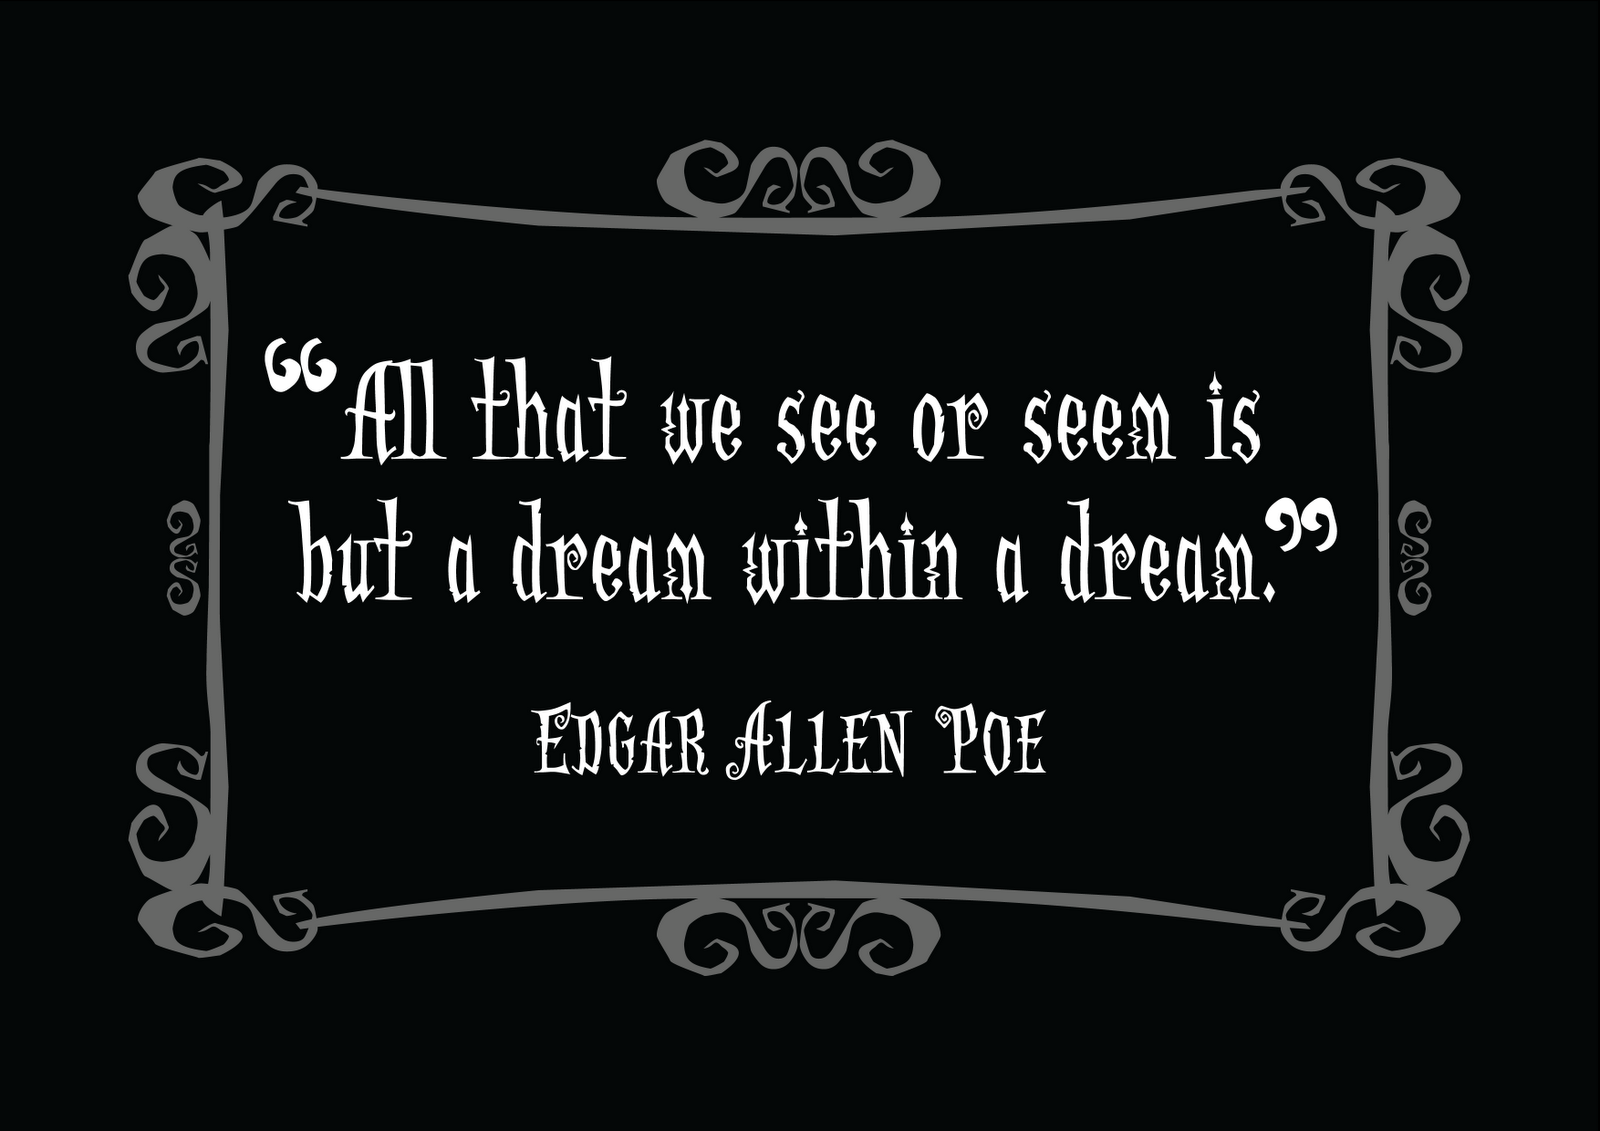 Edgar Allan Poe's quote #5